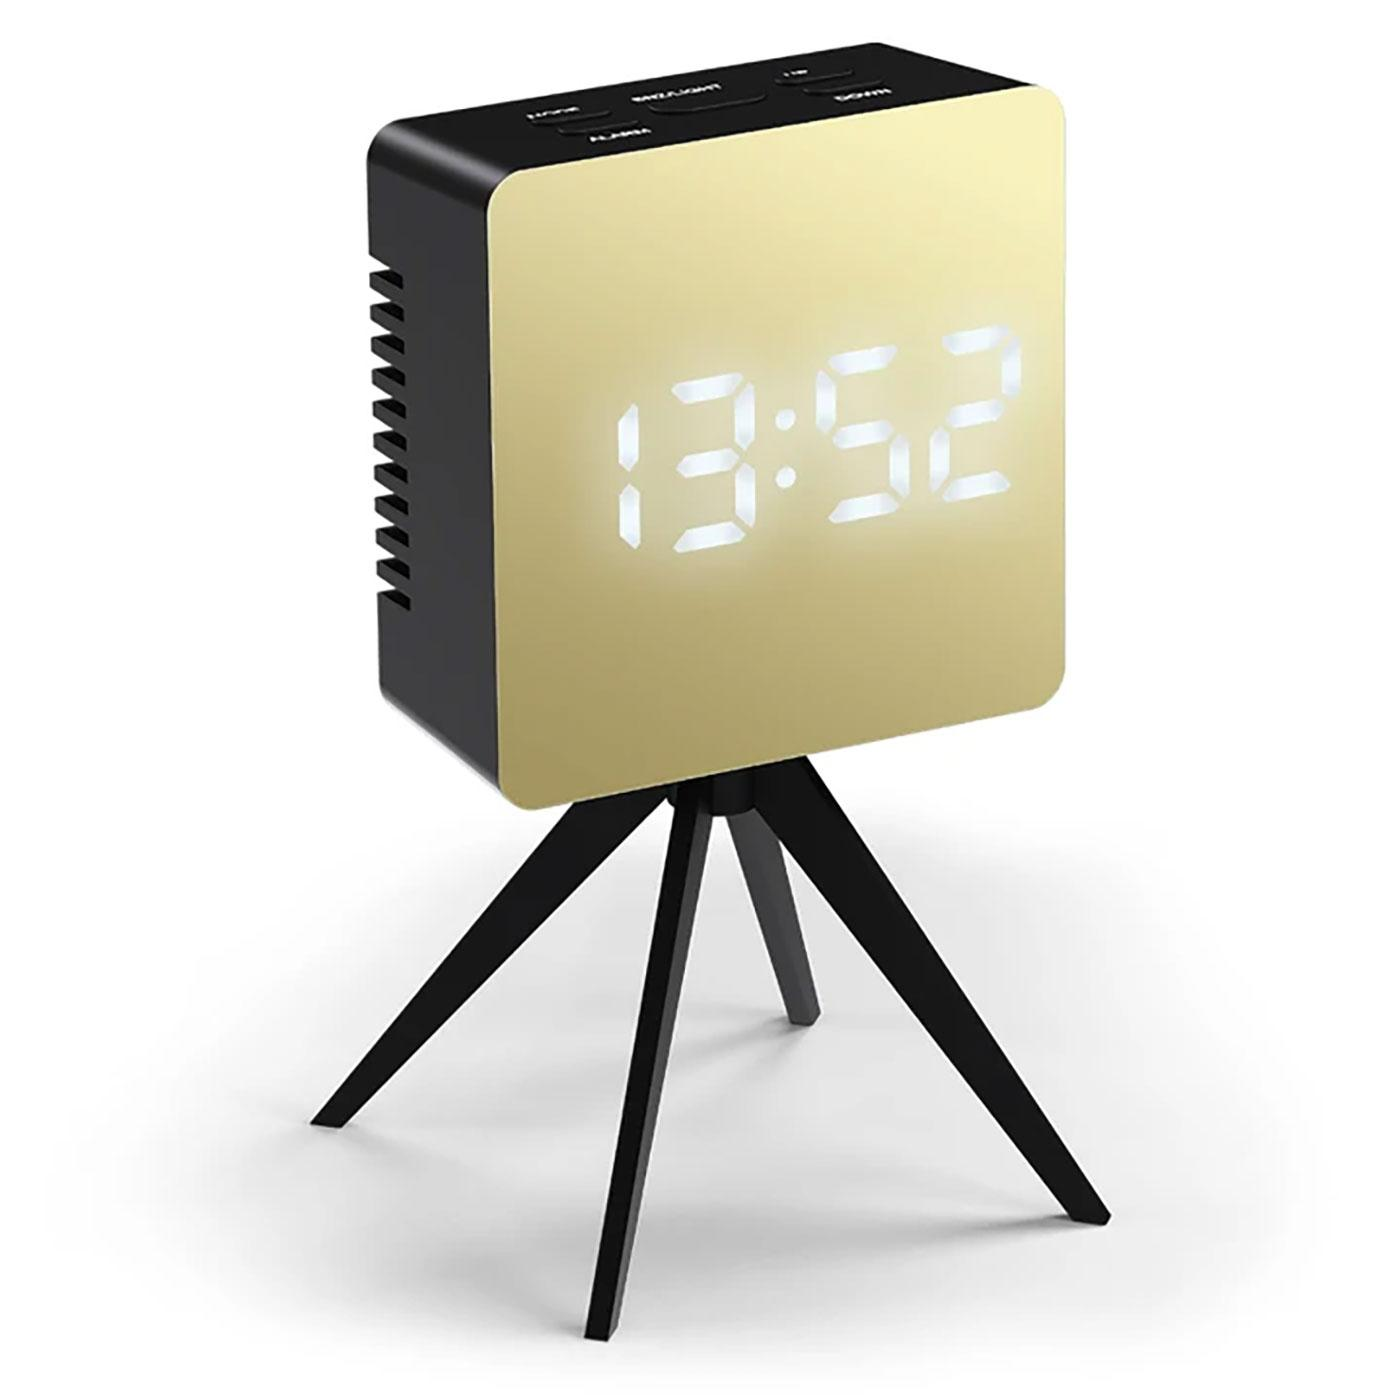 SPACE HOTEL BY NEWGATE CLOCKS Droid Alarm Clock